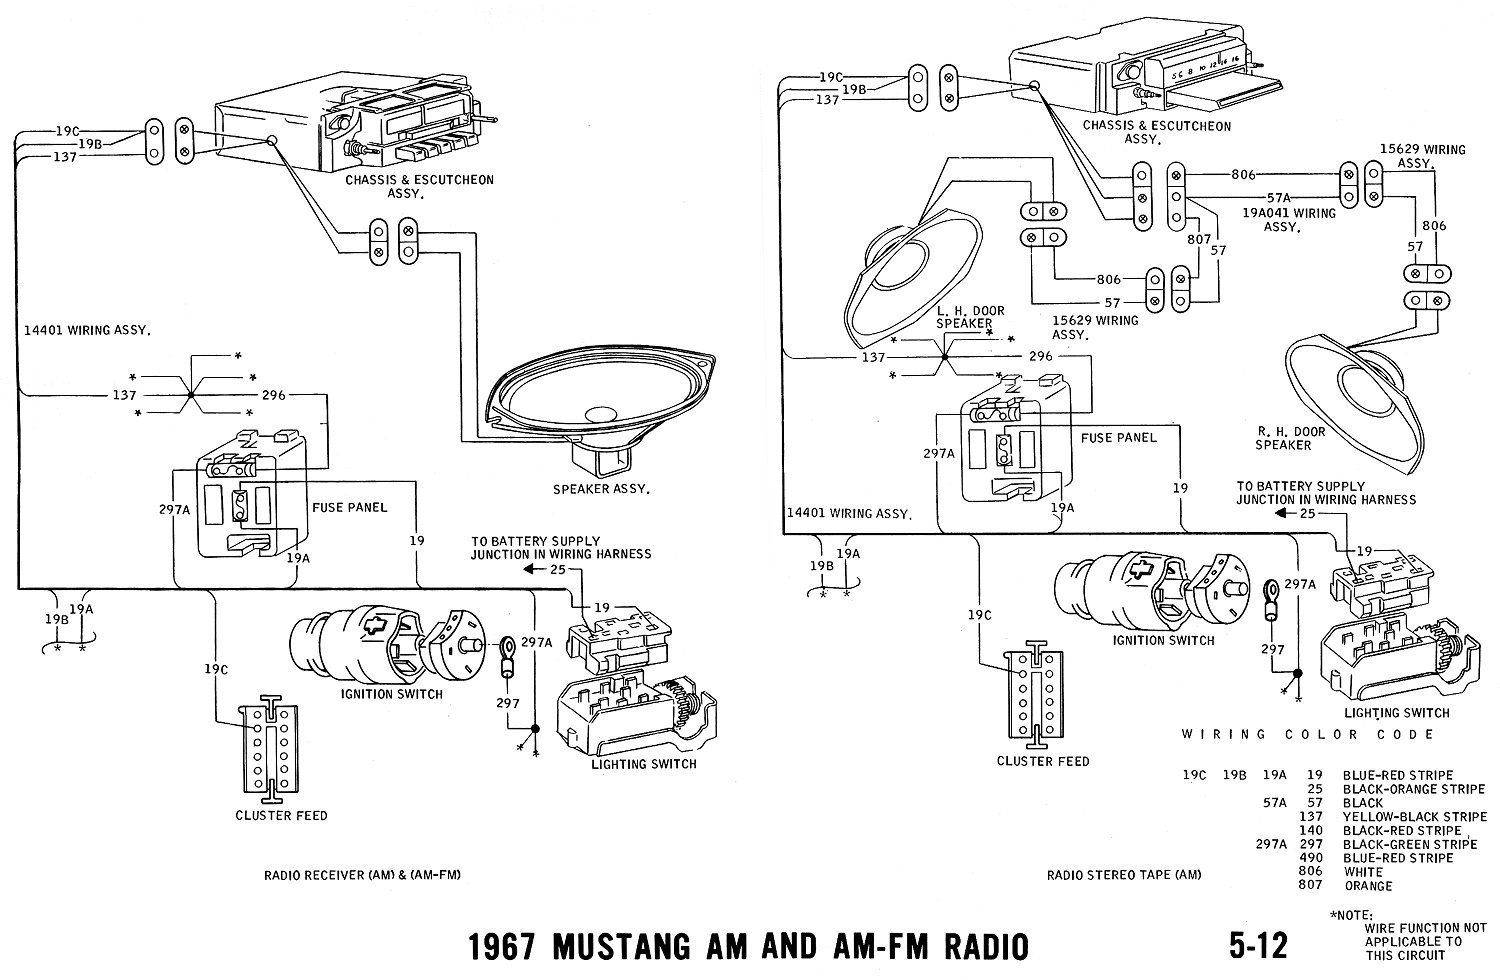 1967 Mustang Wiring And Vacuum Diagrams Average Joe Restoration Motor Resistor Replacement Further Ford Wiper Diagram Am